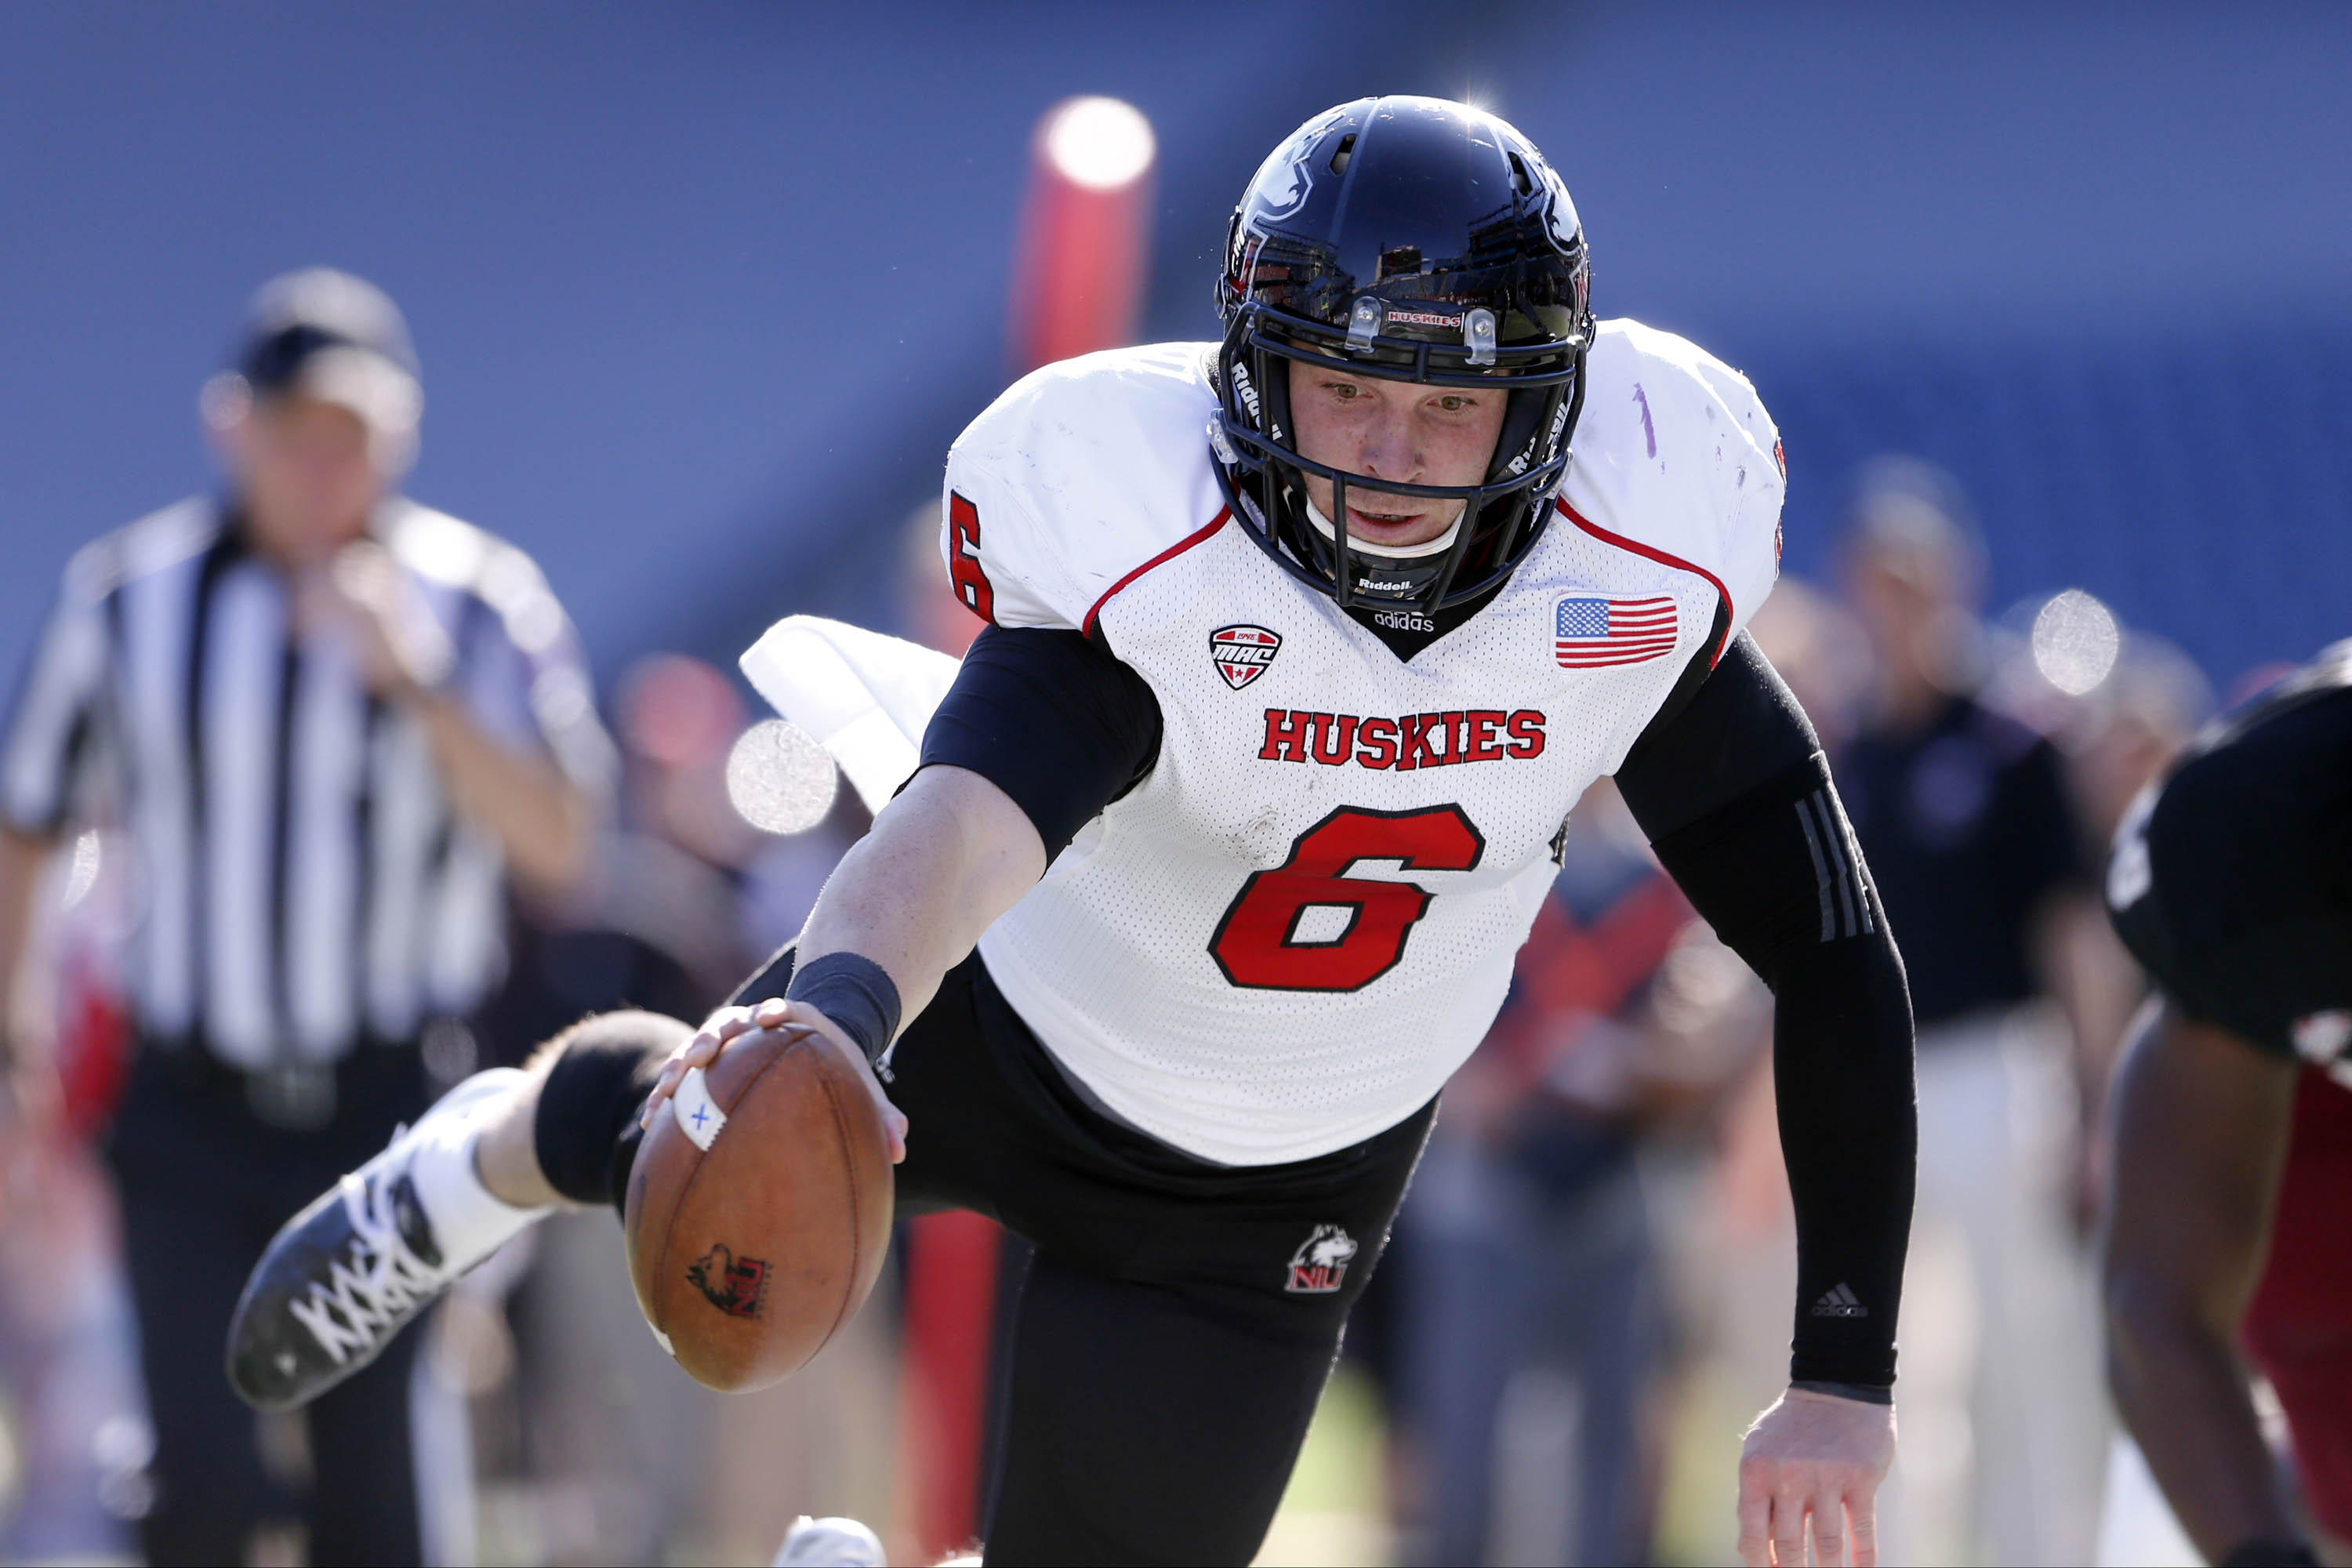 Northern Illinois Huskies quarterback Jordan Lynch (6) scores a touchdown against the Massachusetts Minutemen during the first quarter at Gillette Stadium. (David Butler II/USA TODAY Sports)